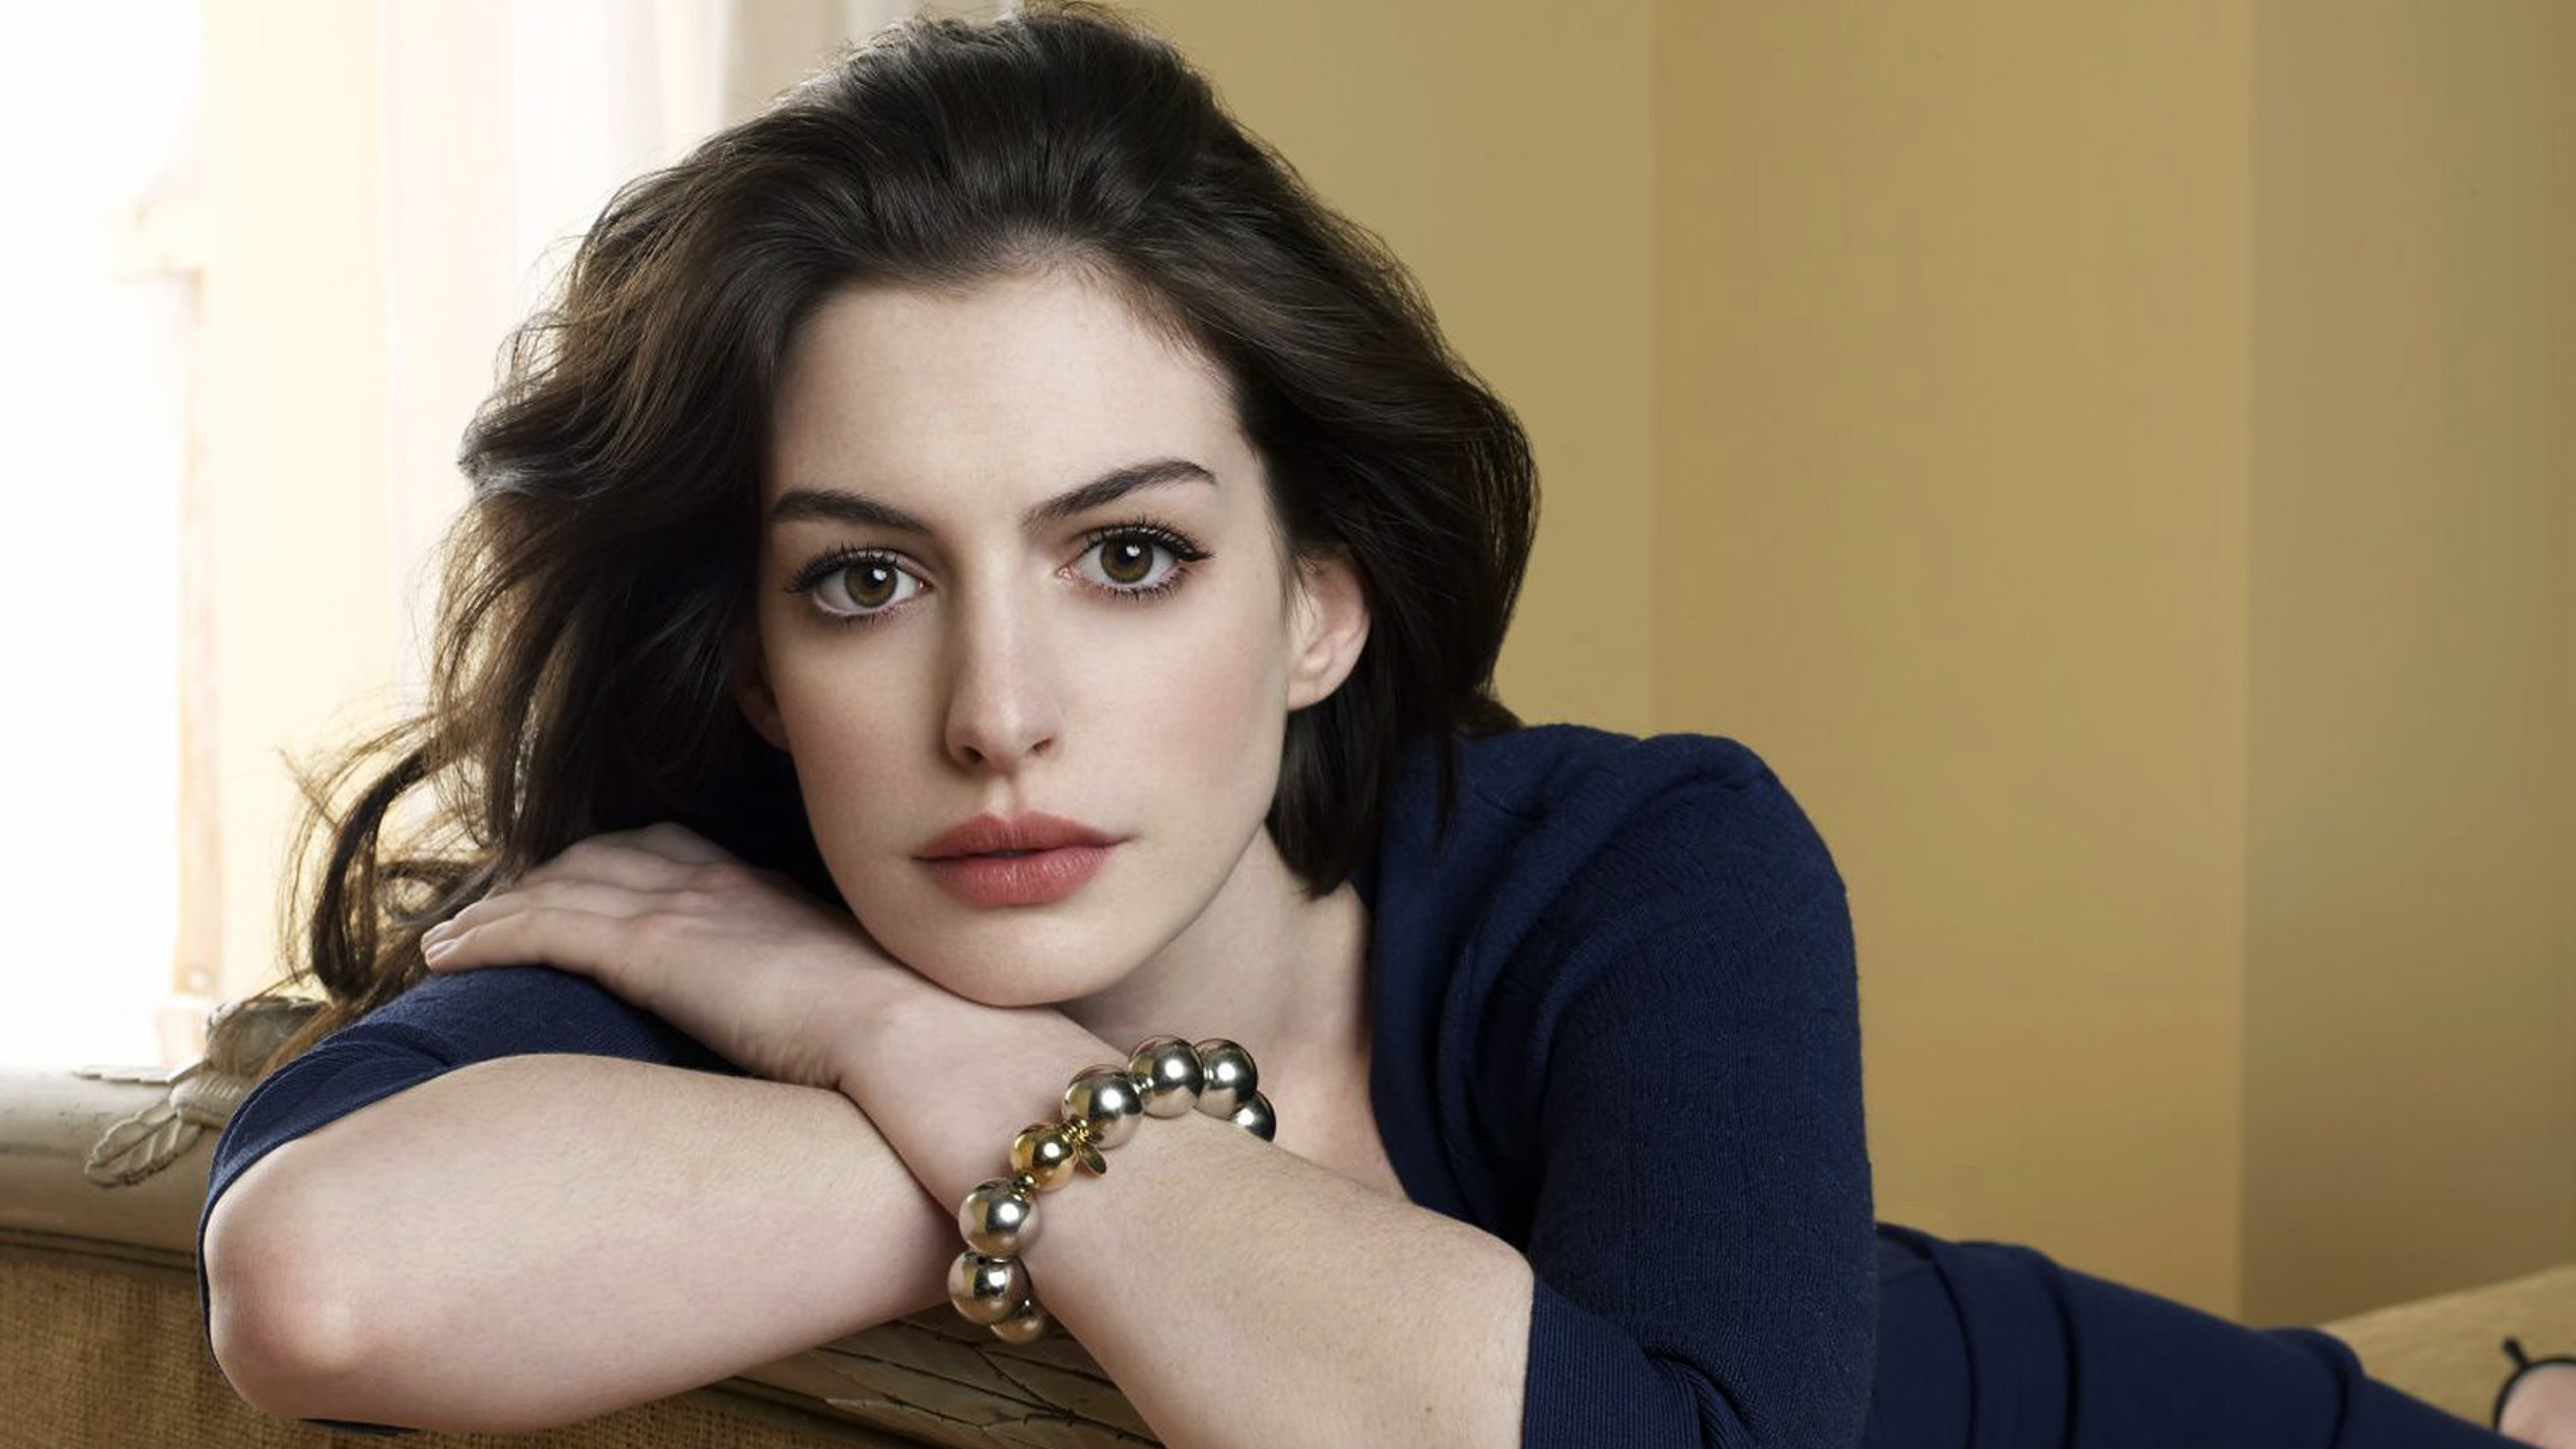 3840x2160 - Anne Hathaway Wallpapers 16